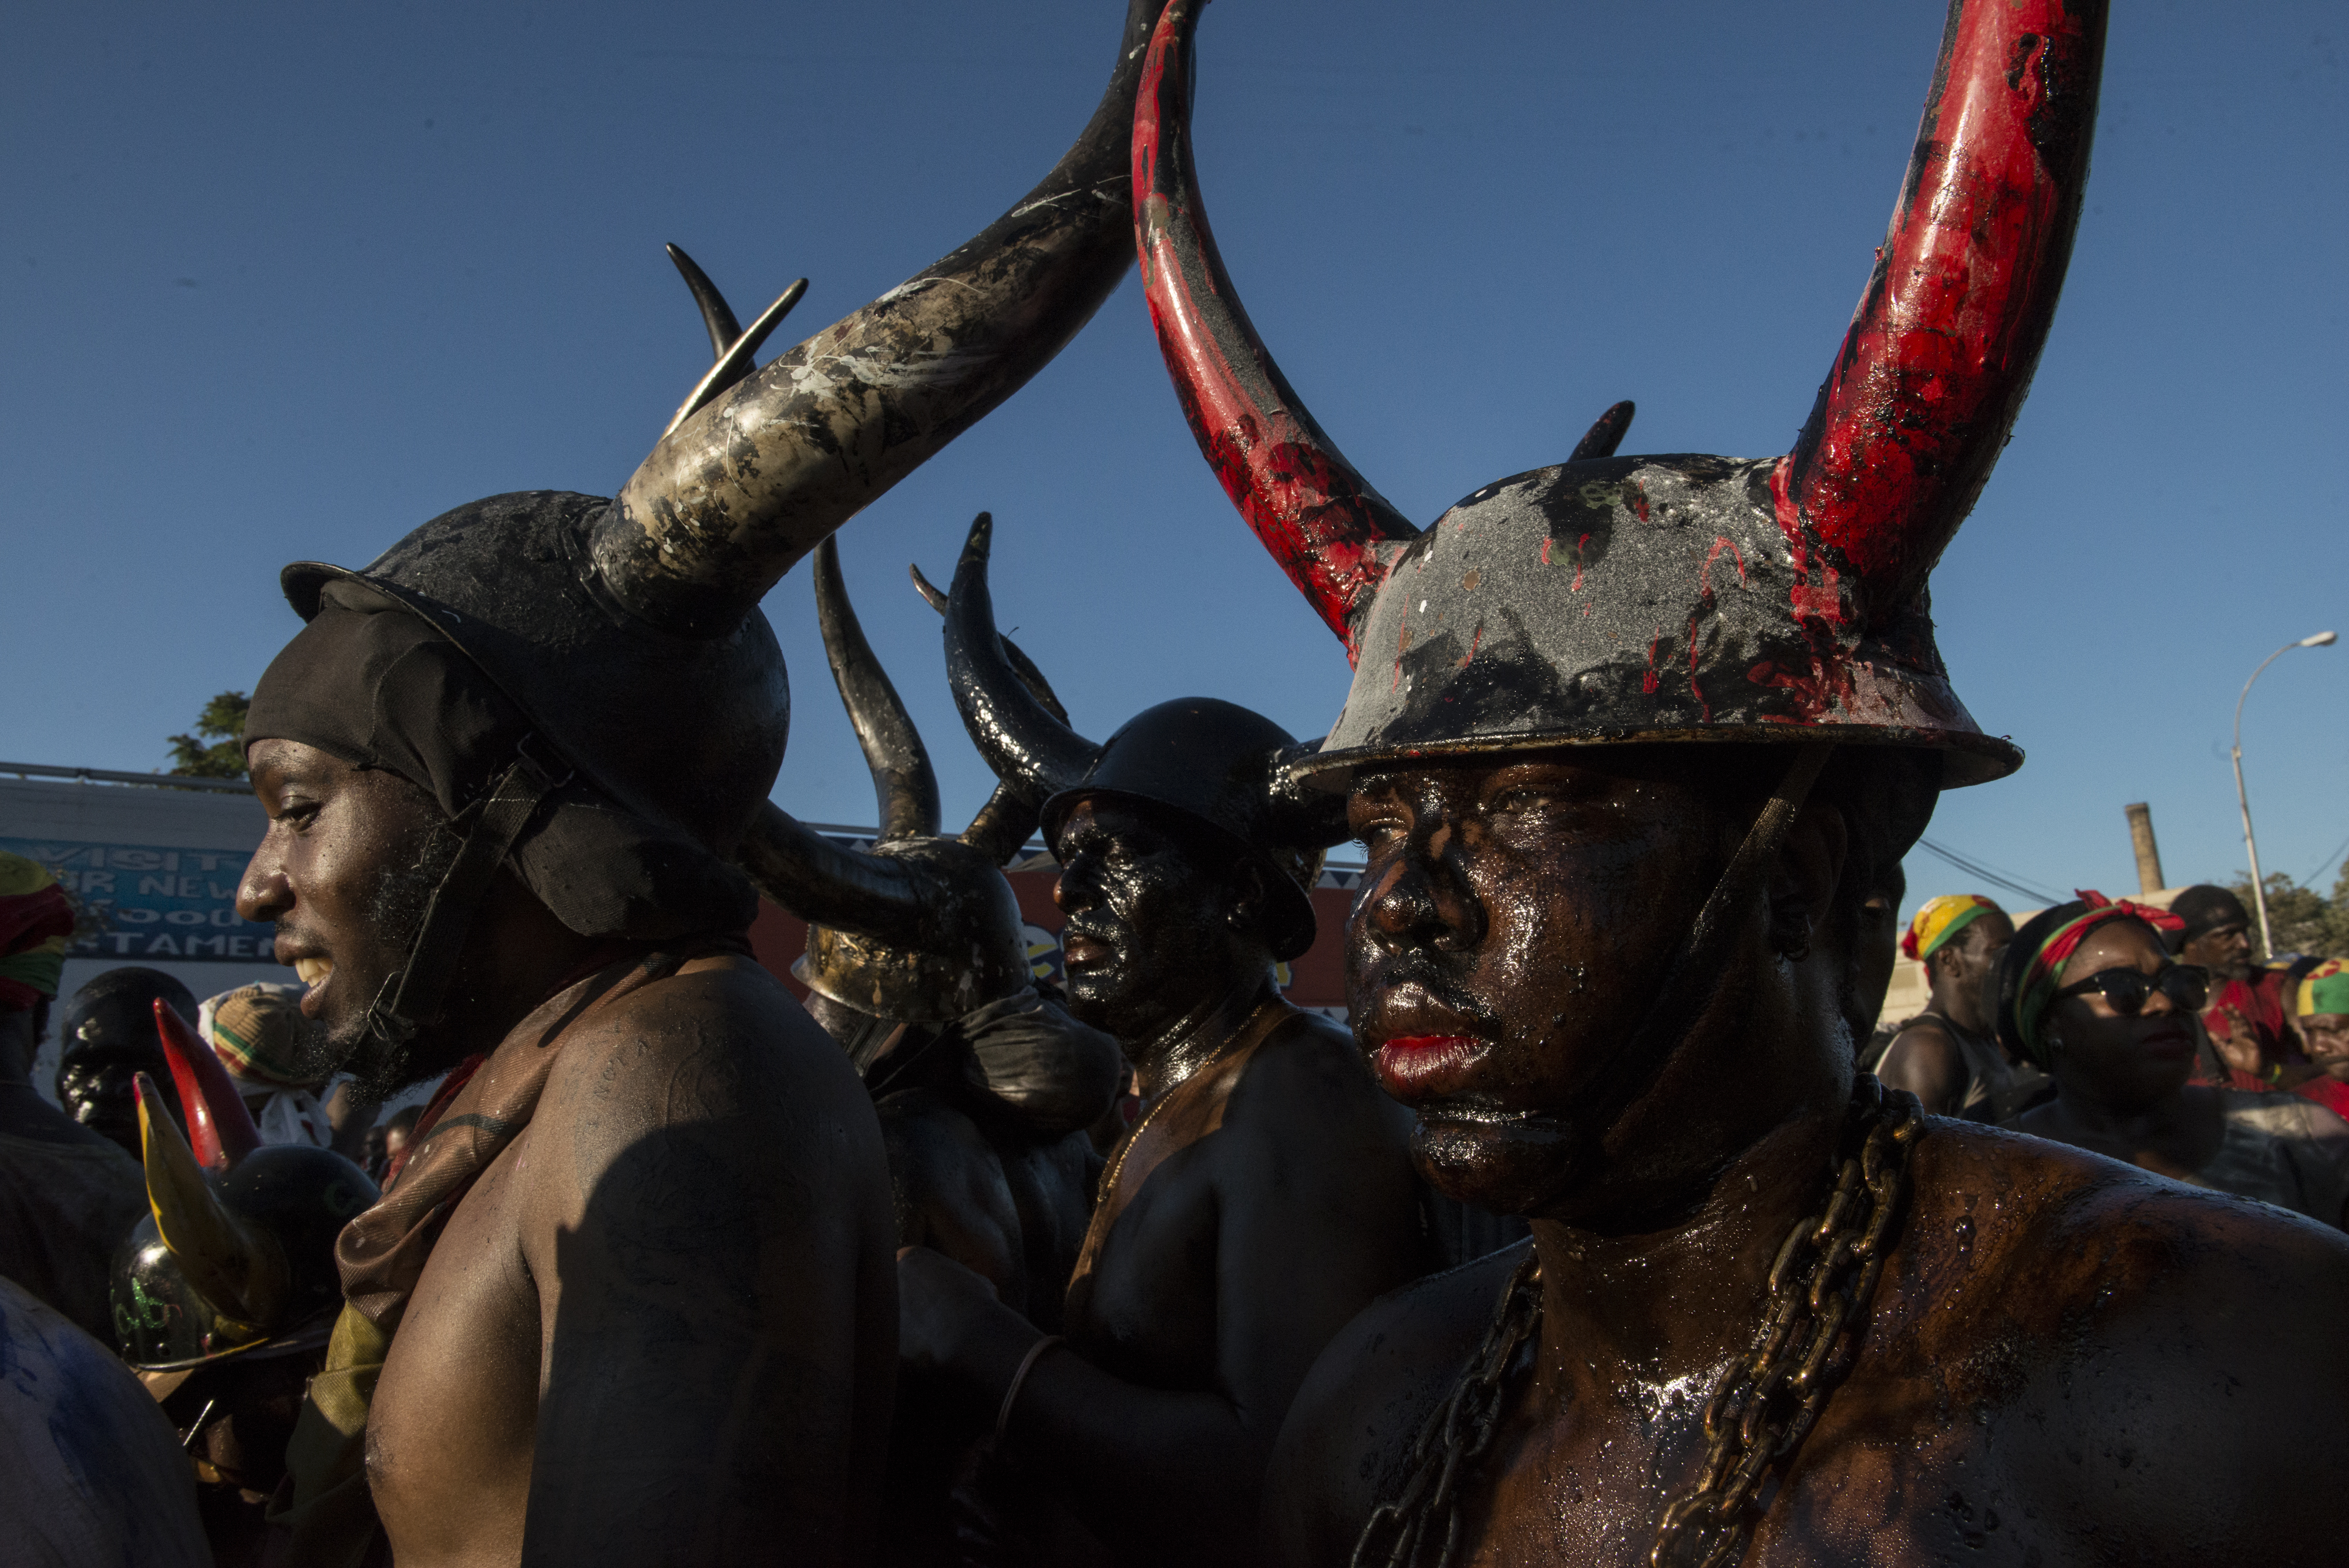 Revelers participate in Jouvert .(Photo by Stephanie Keith/Getty Images)